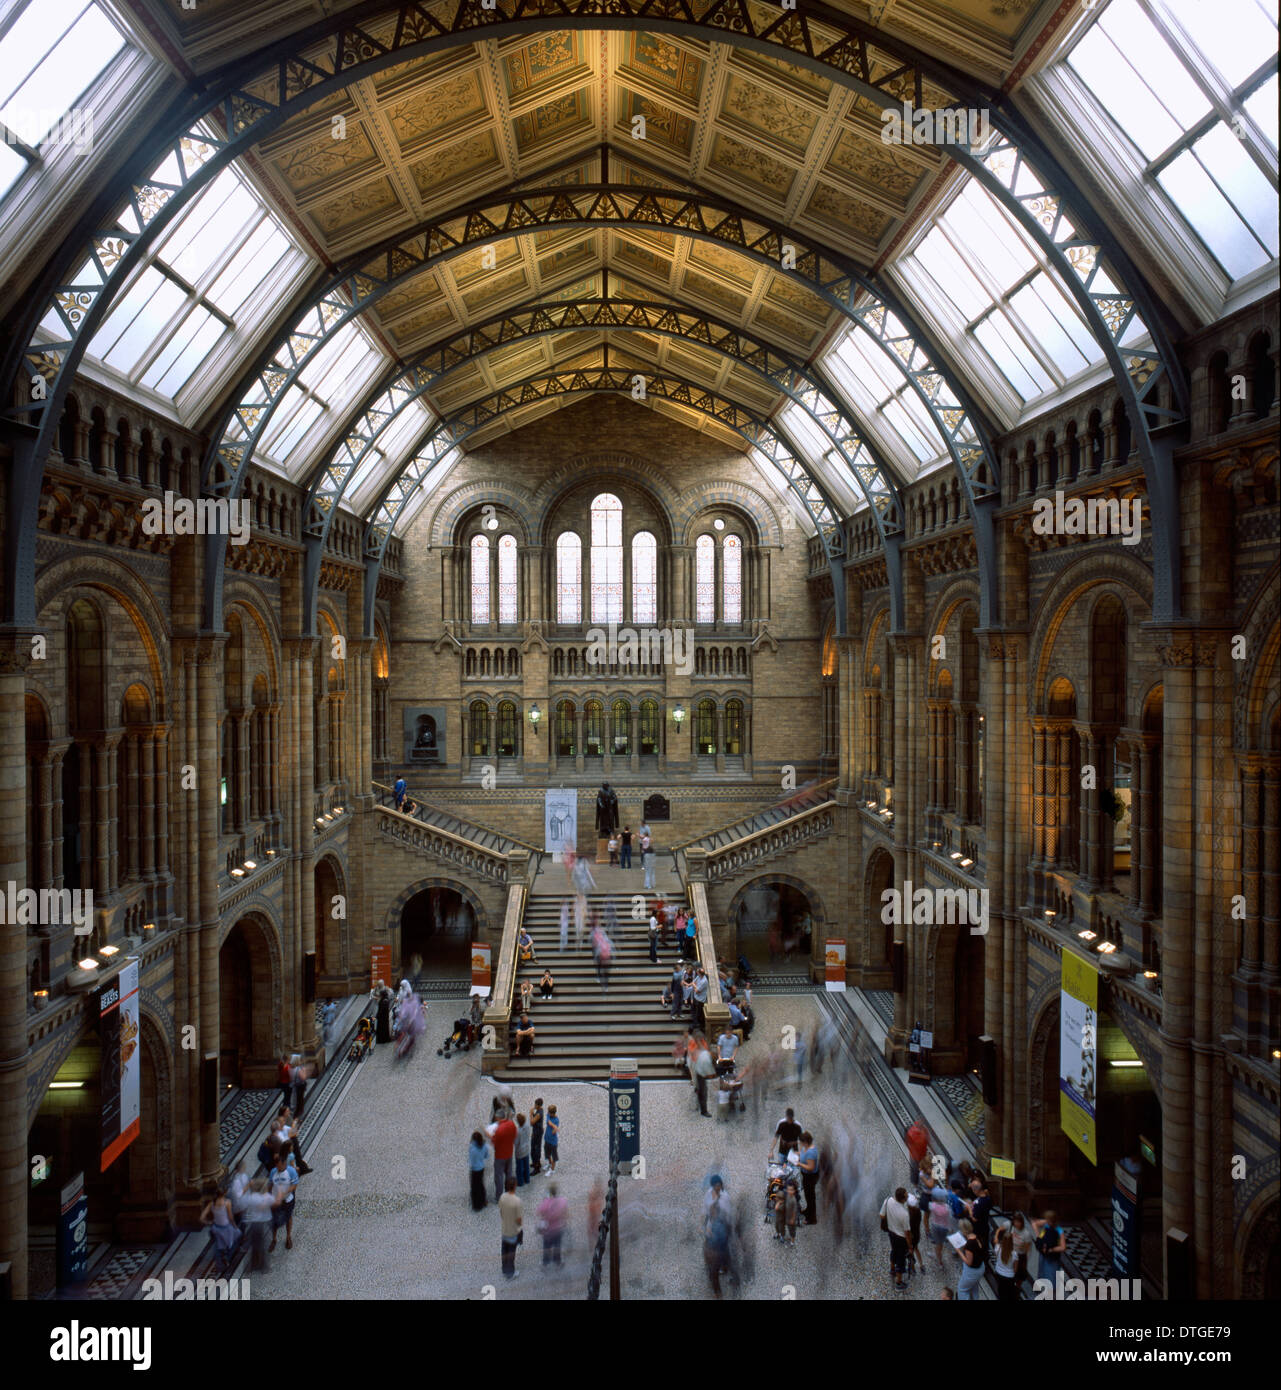 The Natural History Museum Stock Photo